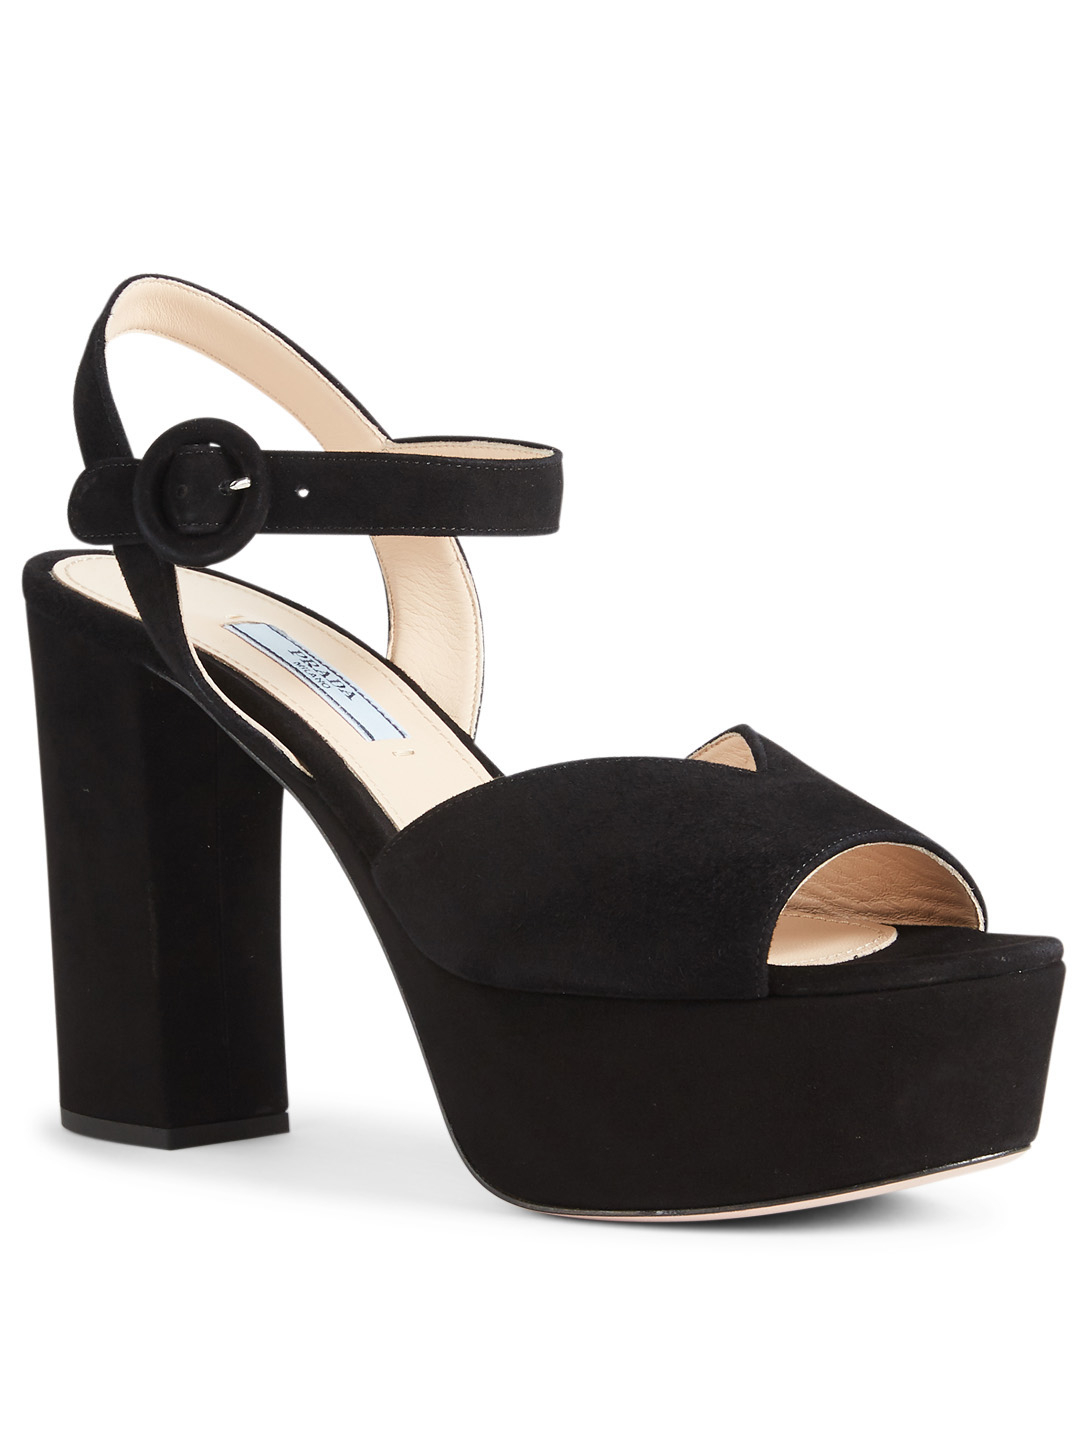 PRADA Suede Platform Sandals Womens Black